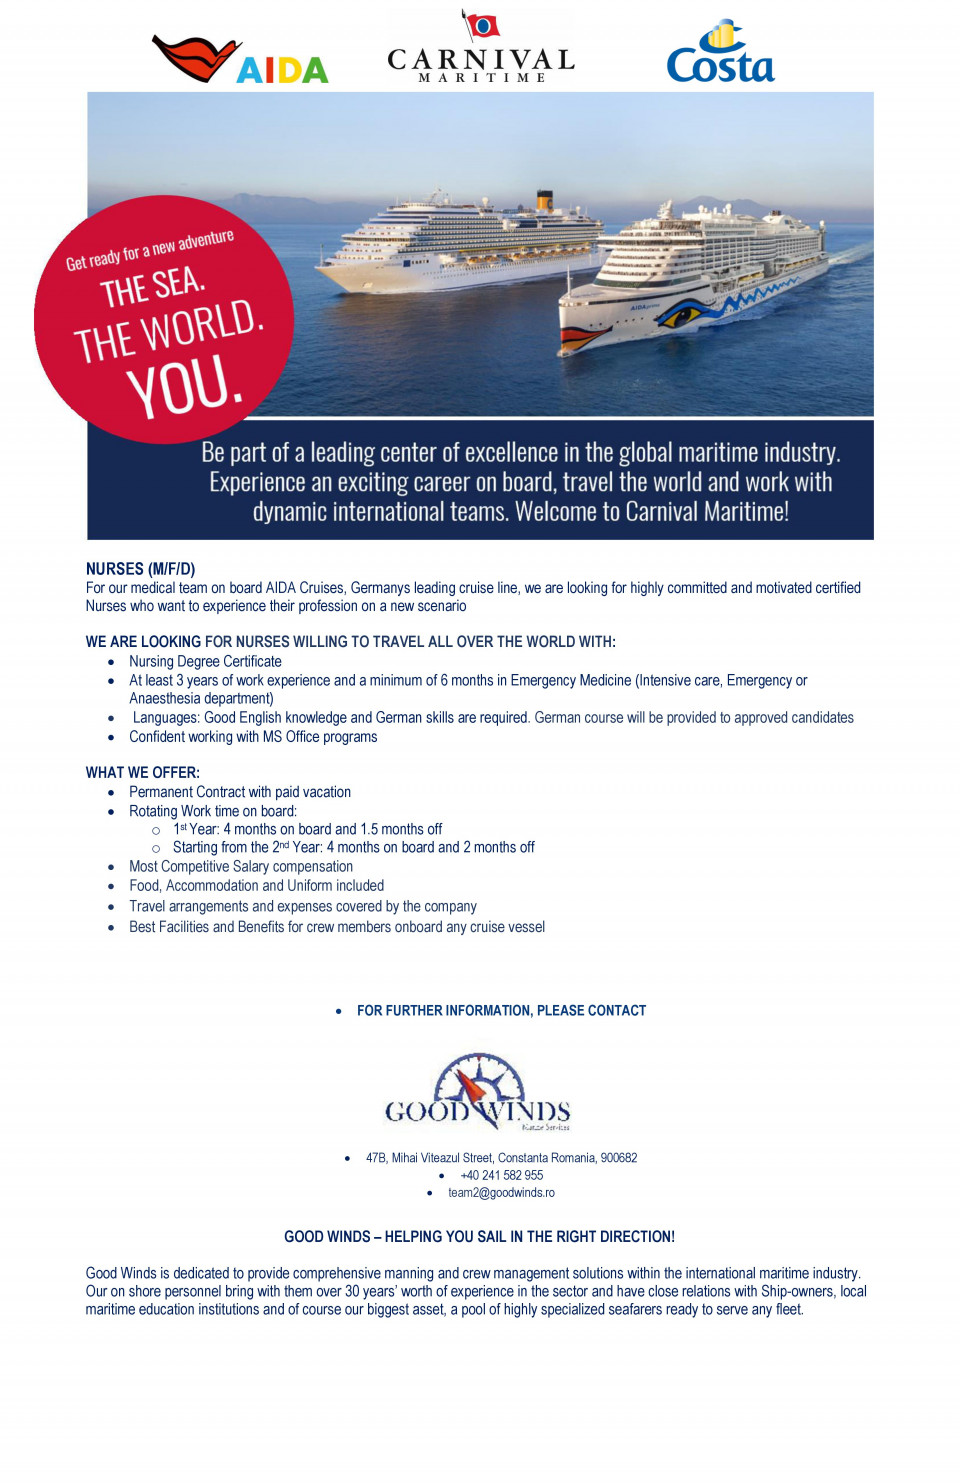 NURSES (M/F/D)